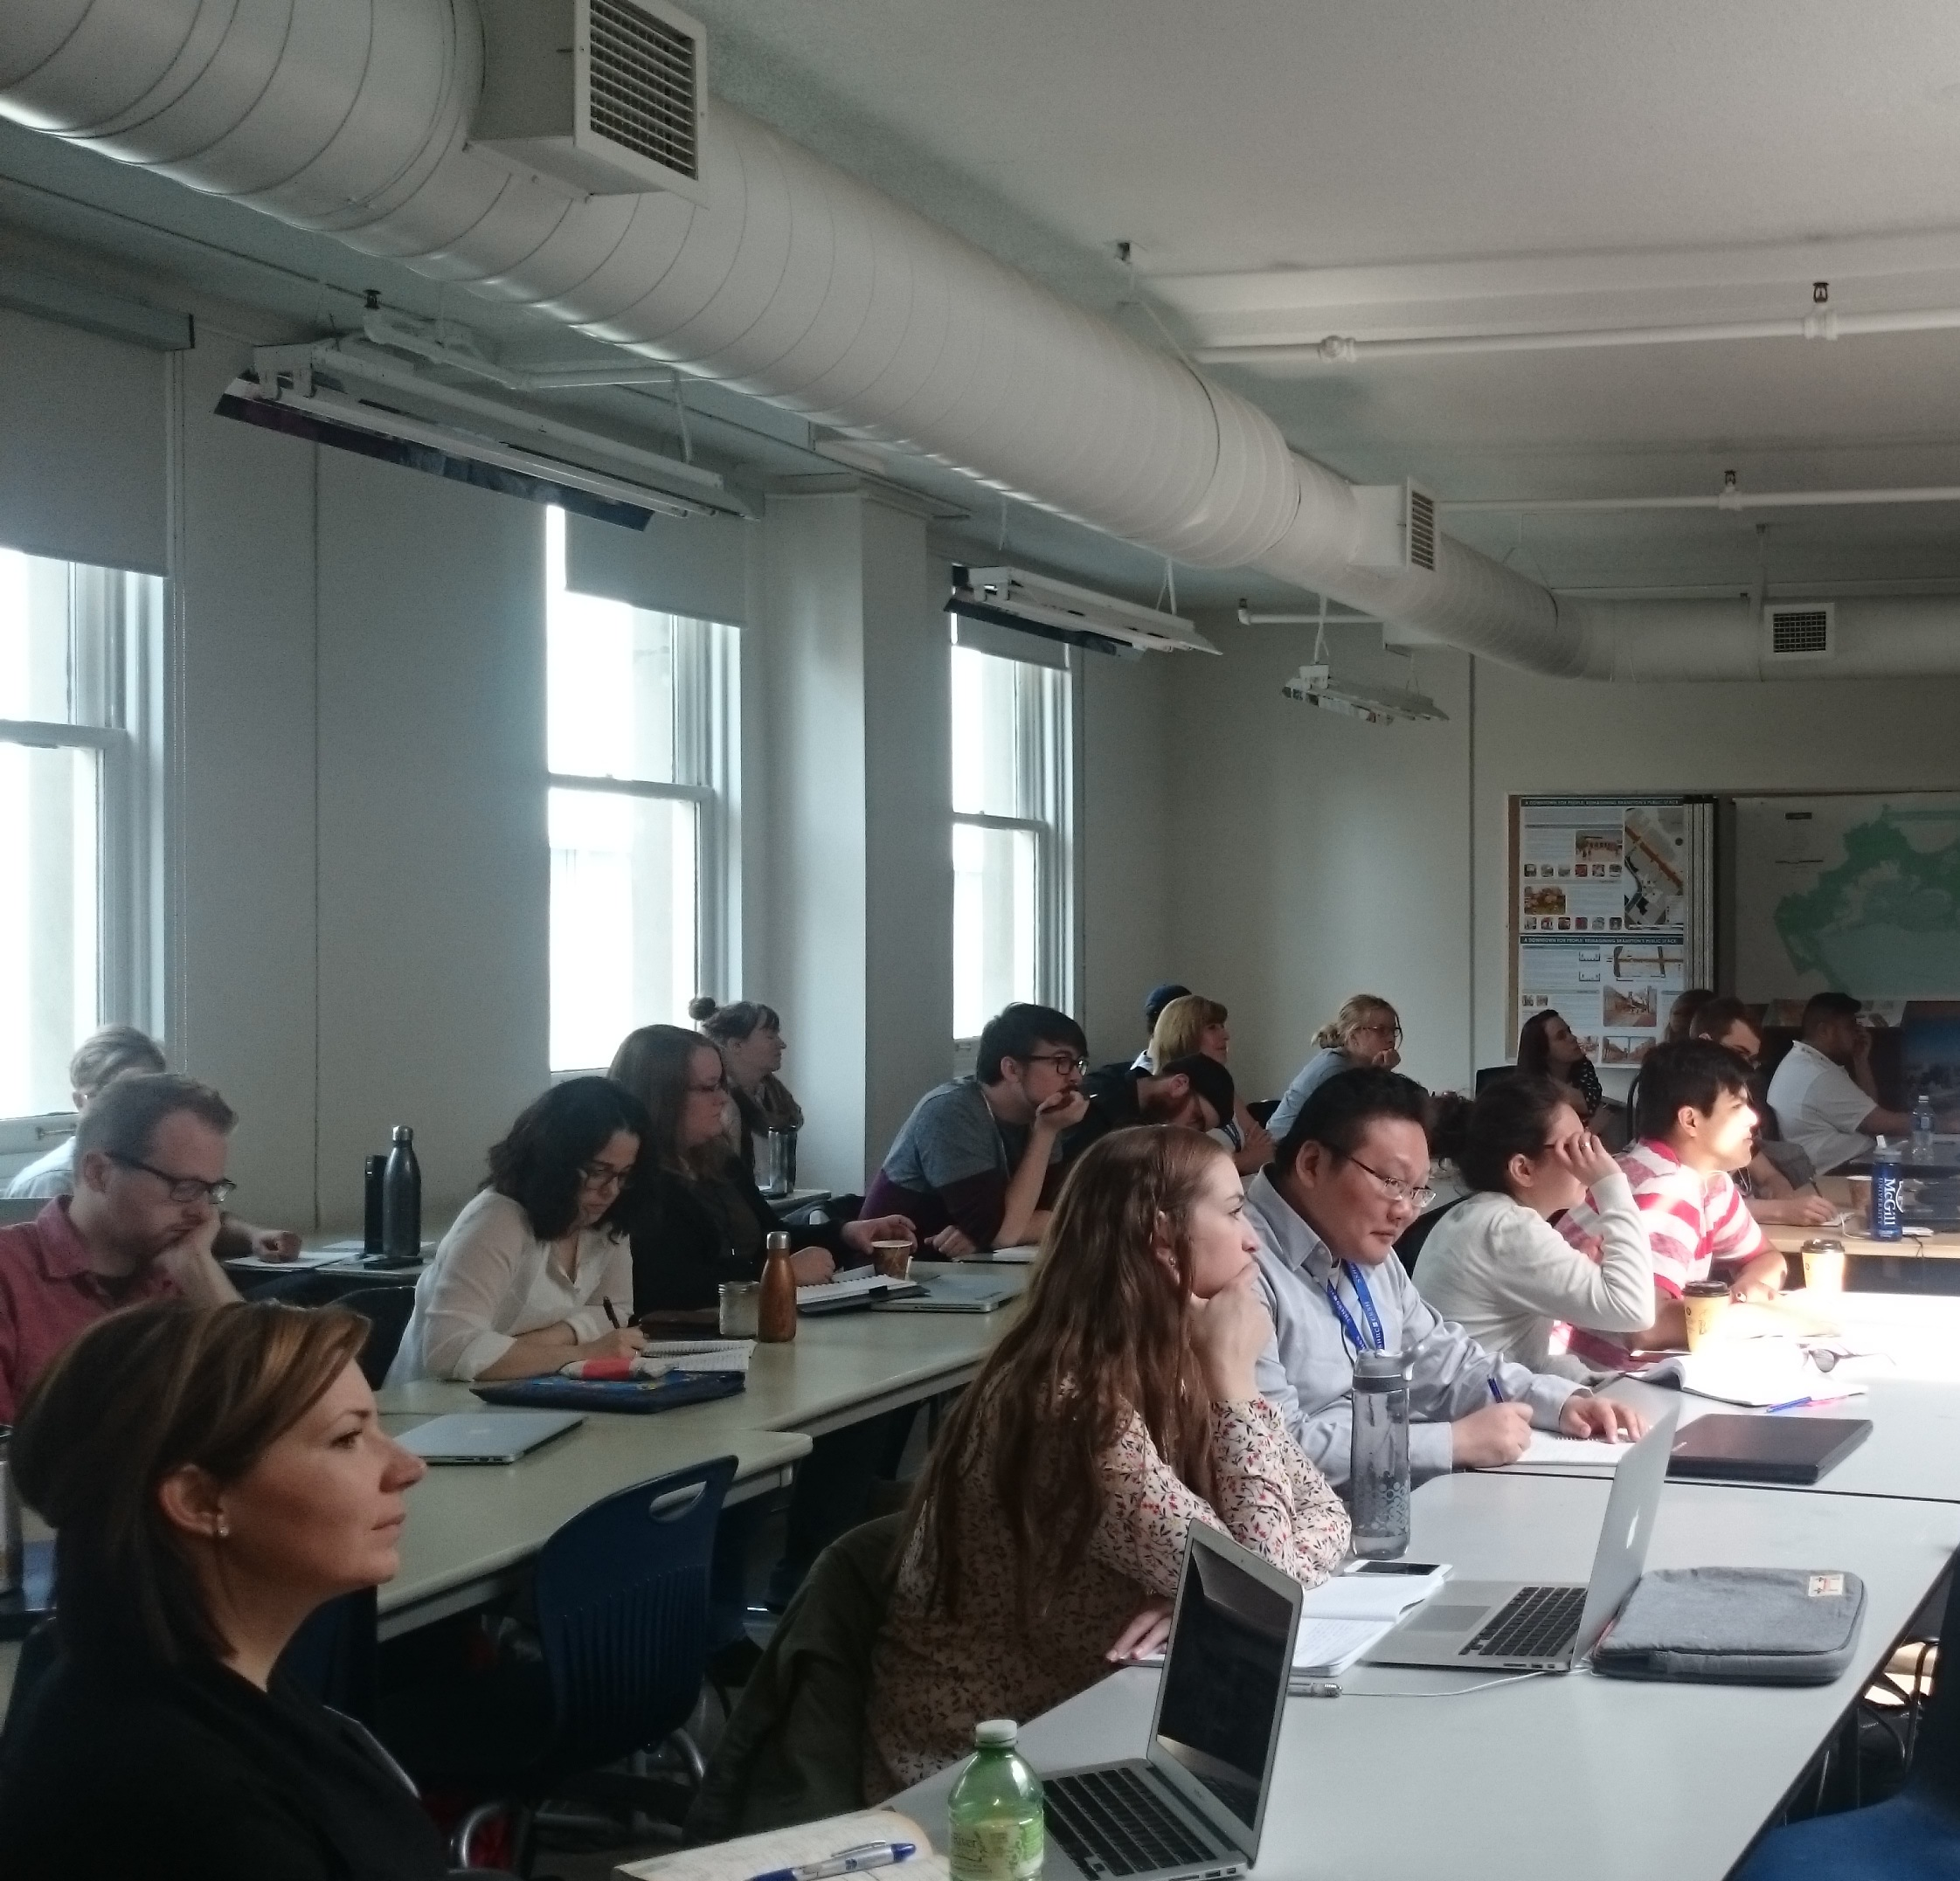 Geothink's 2016 Summer Institute took place the second week of May at Ryerson University in Toronto with 35 students in attendance.